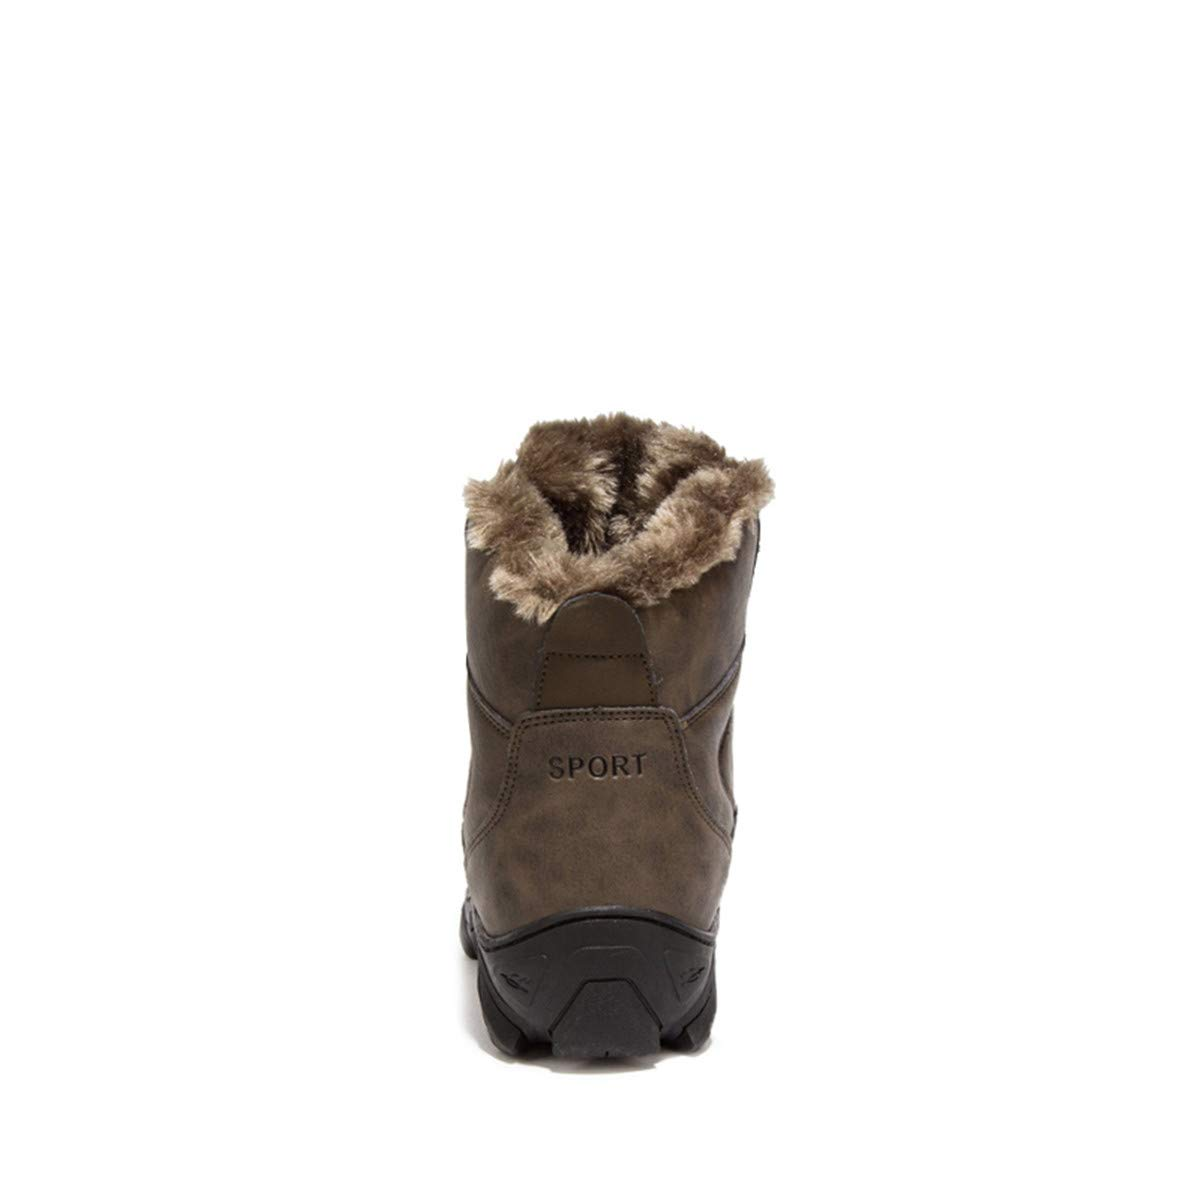 Ngjifvjishu Winter Fur Supper Warm Snow Boots for Male Shoes Non Slip Rubber Ankle Boots